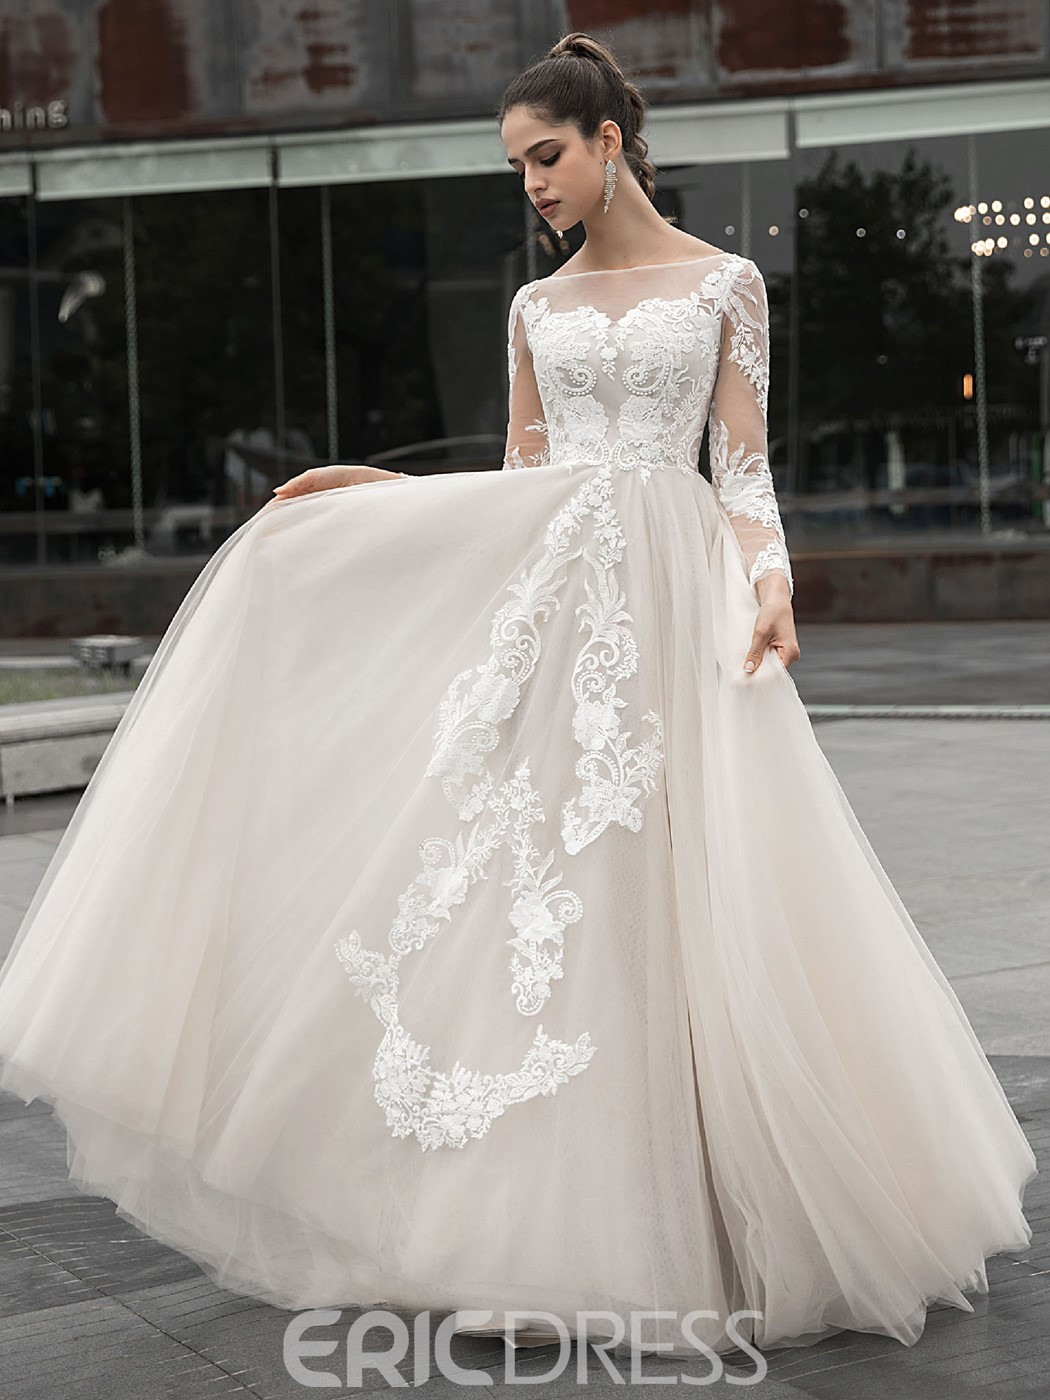 Ericdress Lace A-Line Long Sleeves Hall Wedding Dress